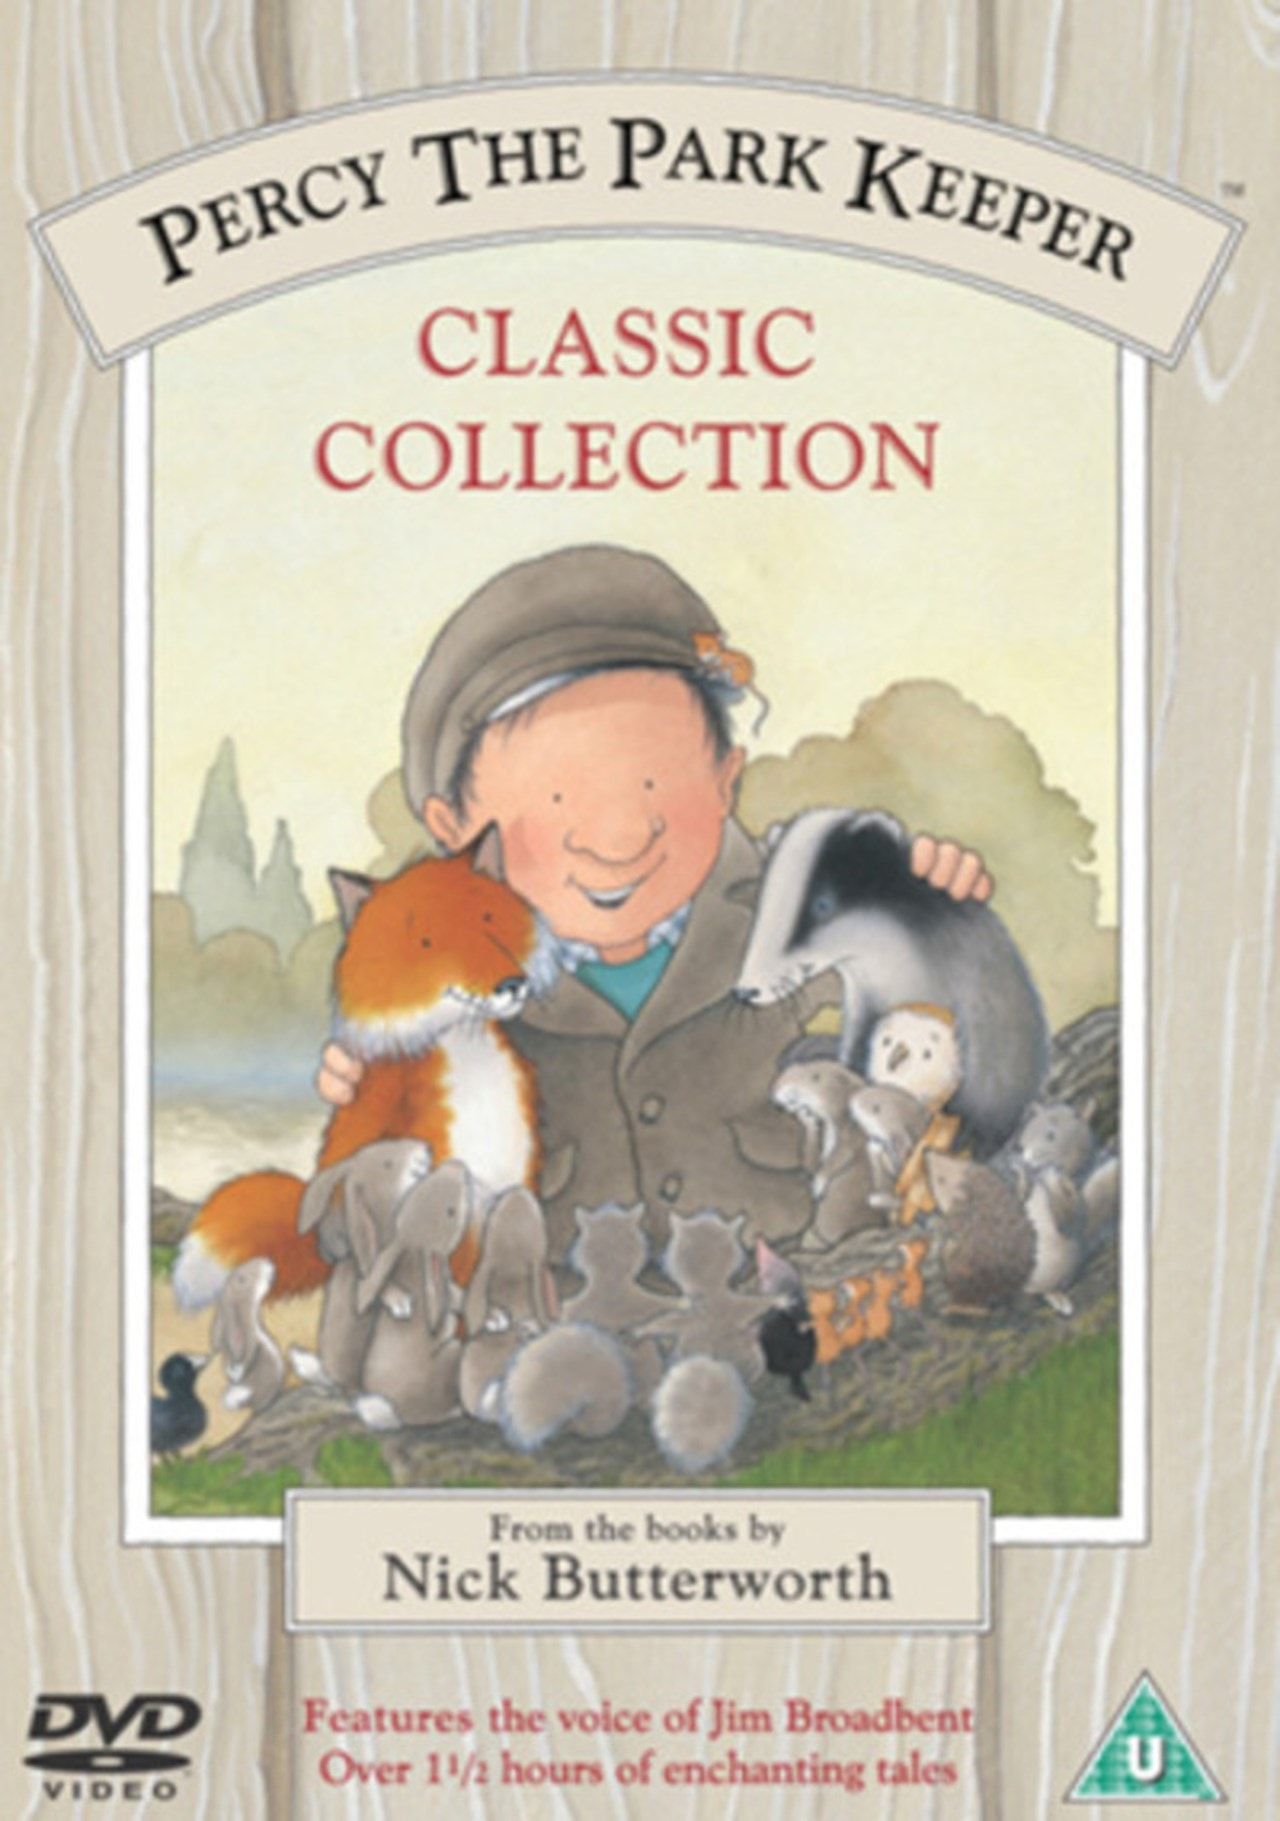 Percy the Park Keeper: Classic Collection - 1